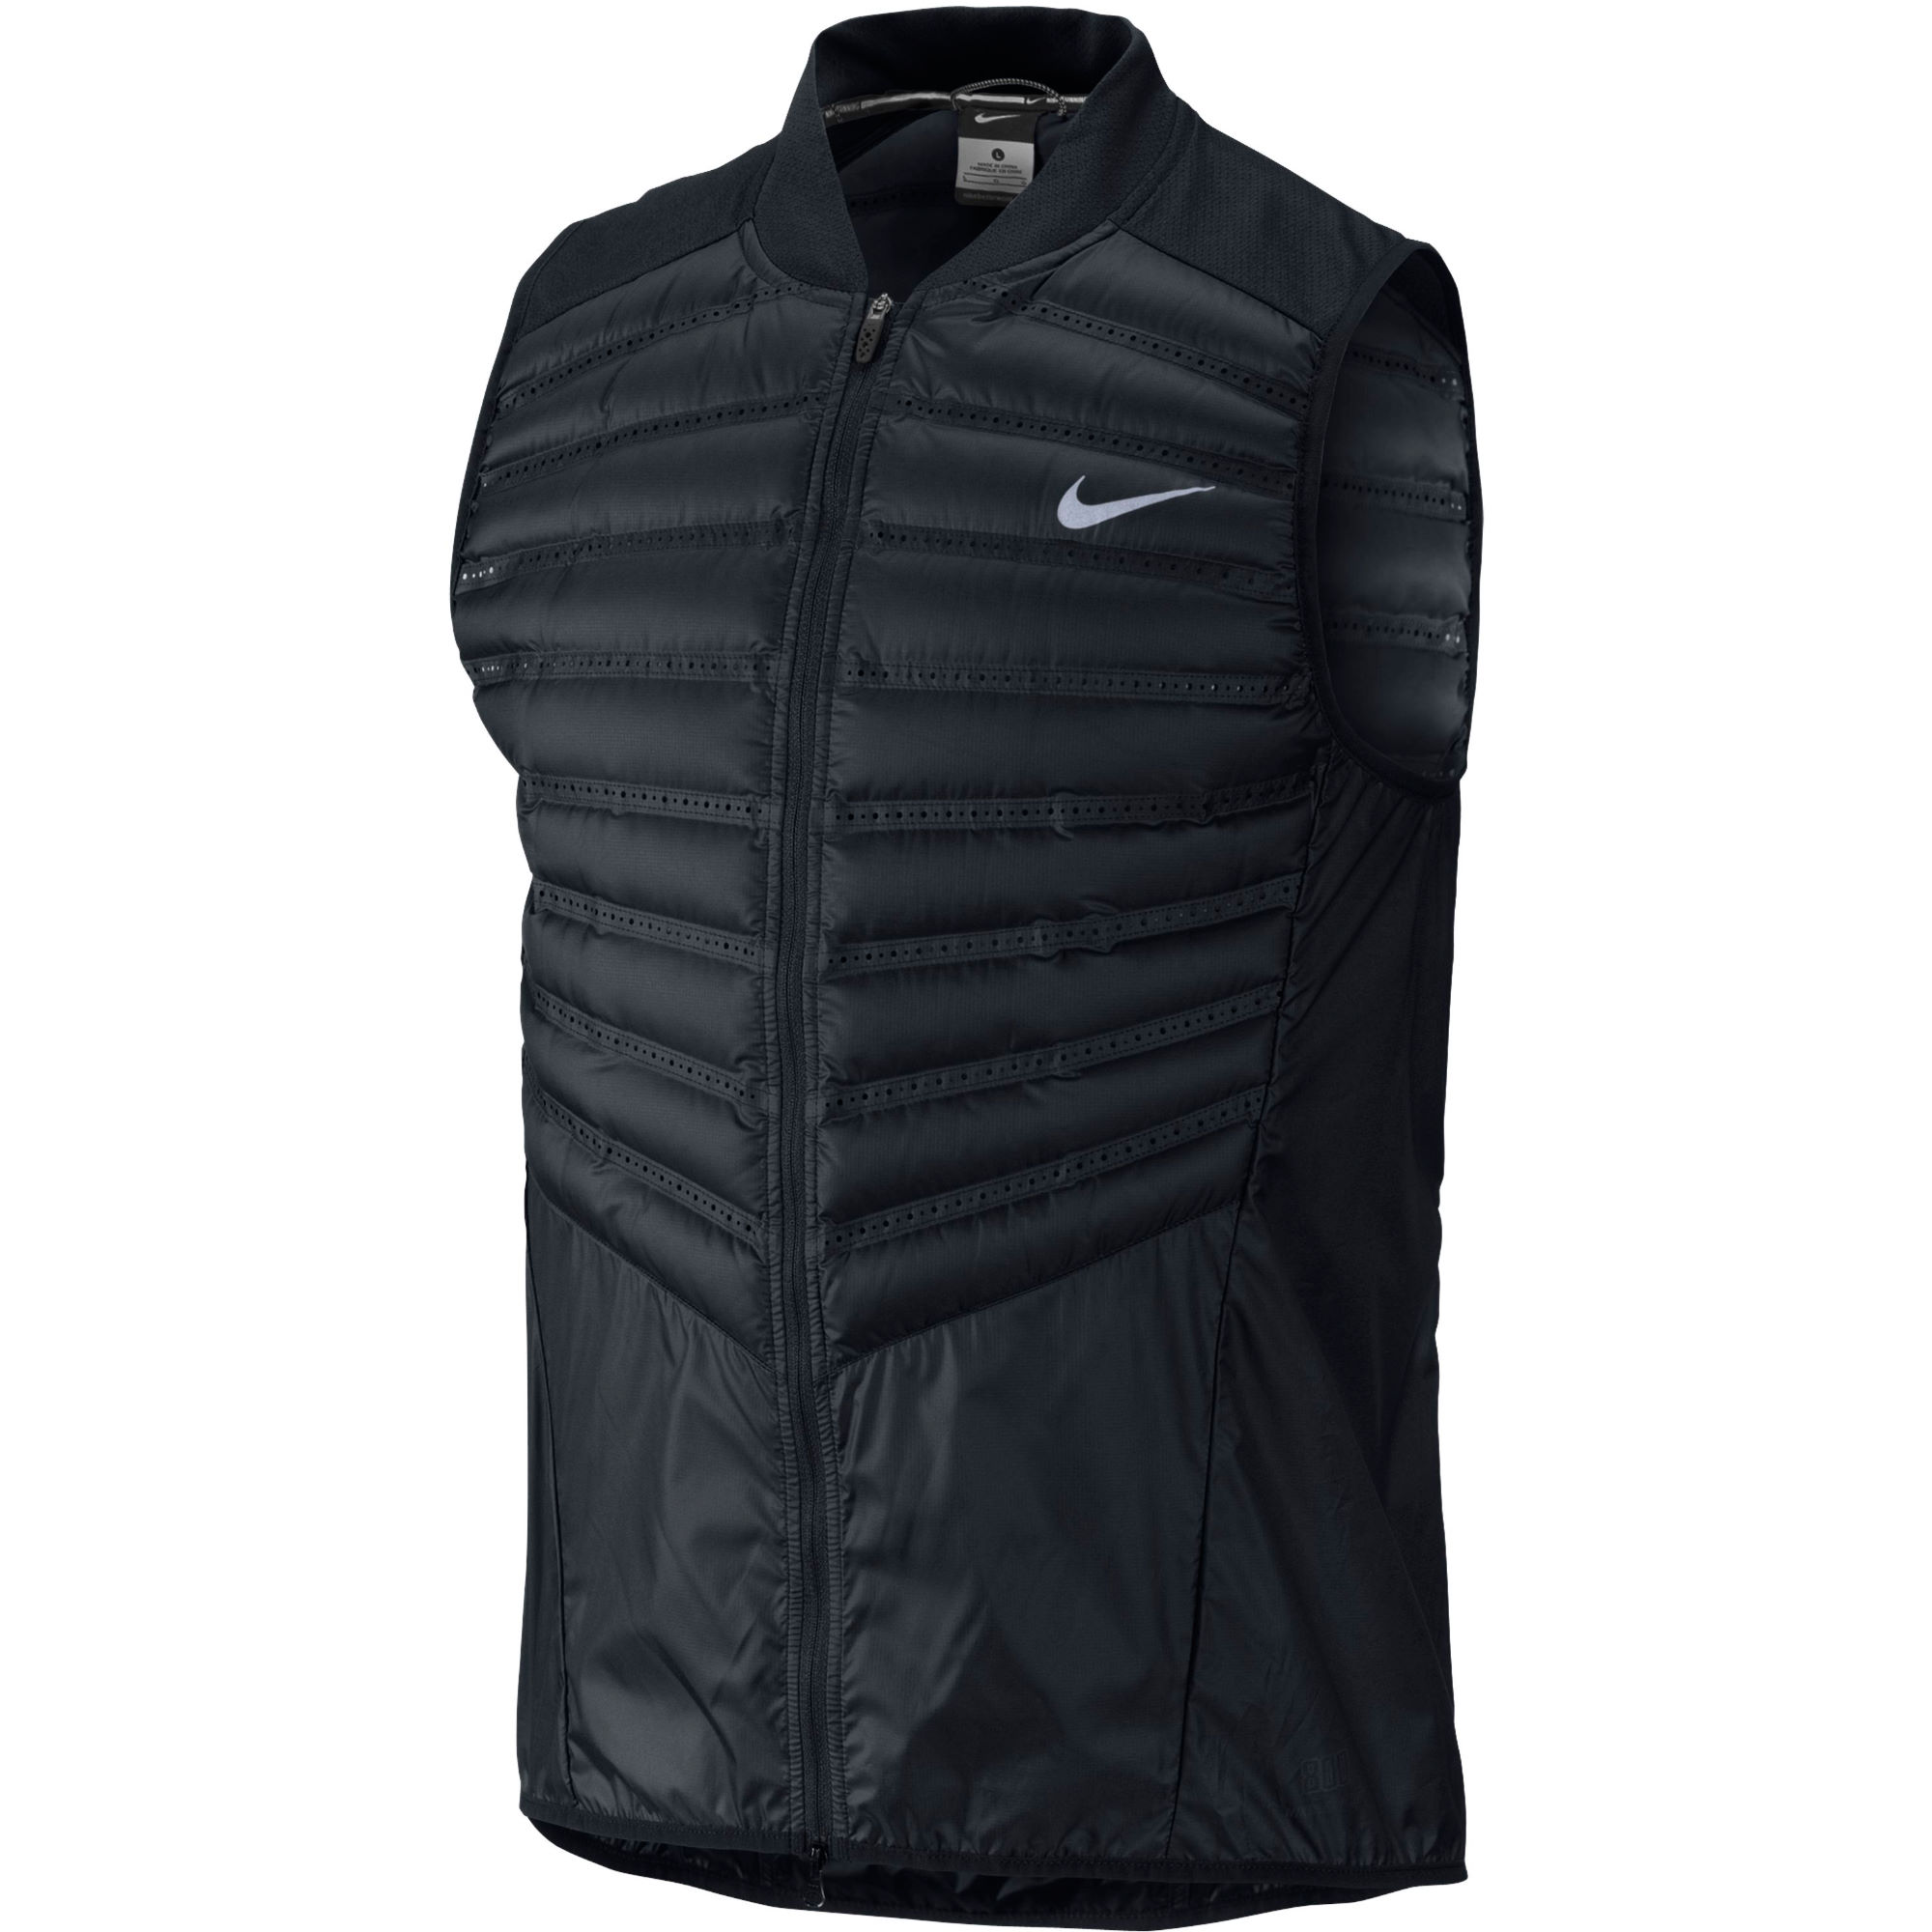 The Nike AeroLoft Men's Golf Gilet pairs the breathable warmth of Nike AeroLoft with a soft, quiet outer shell to help you stay focused on your game. A water-repellent finish .